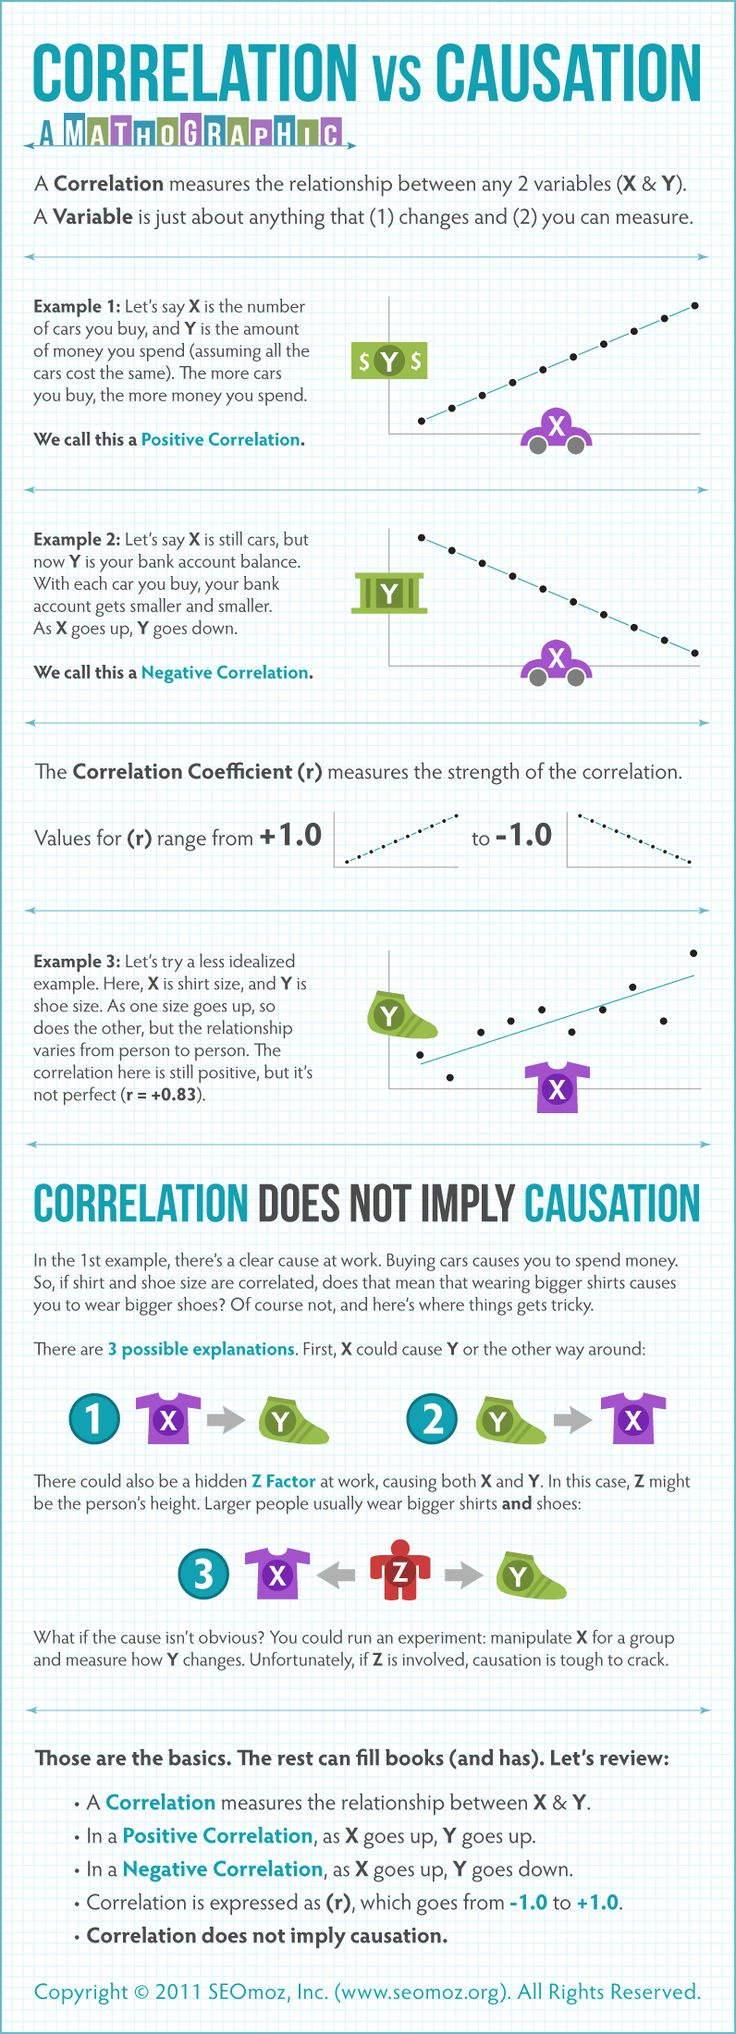 Correlation vs. Causation - a good refresher when trying to make sense of web analytics or social media data.